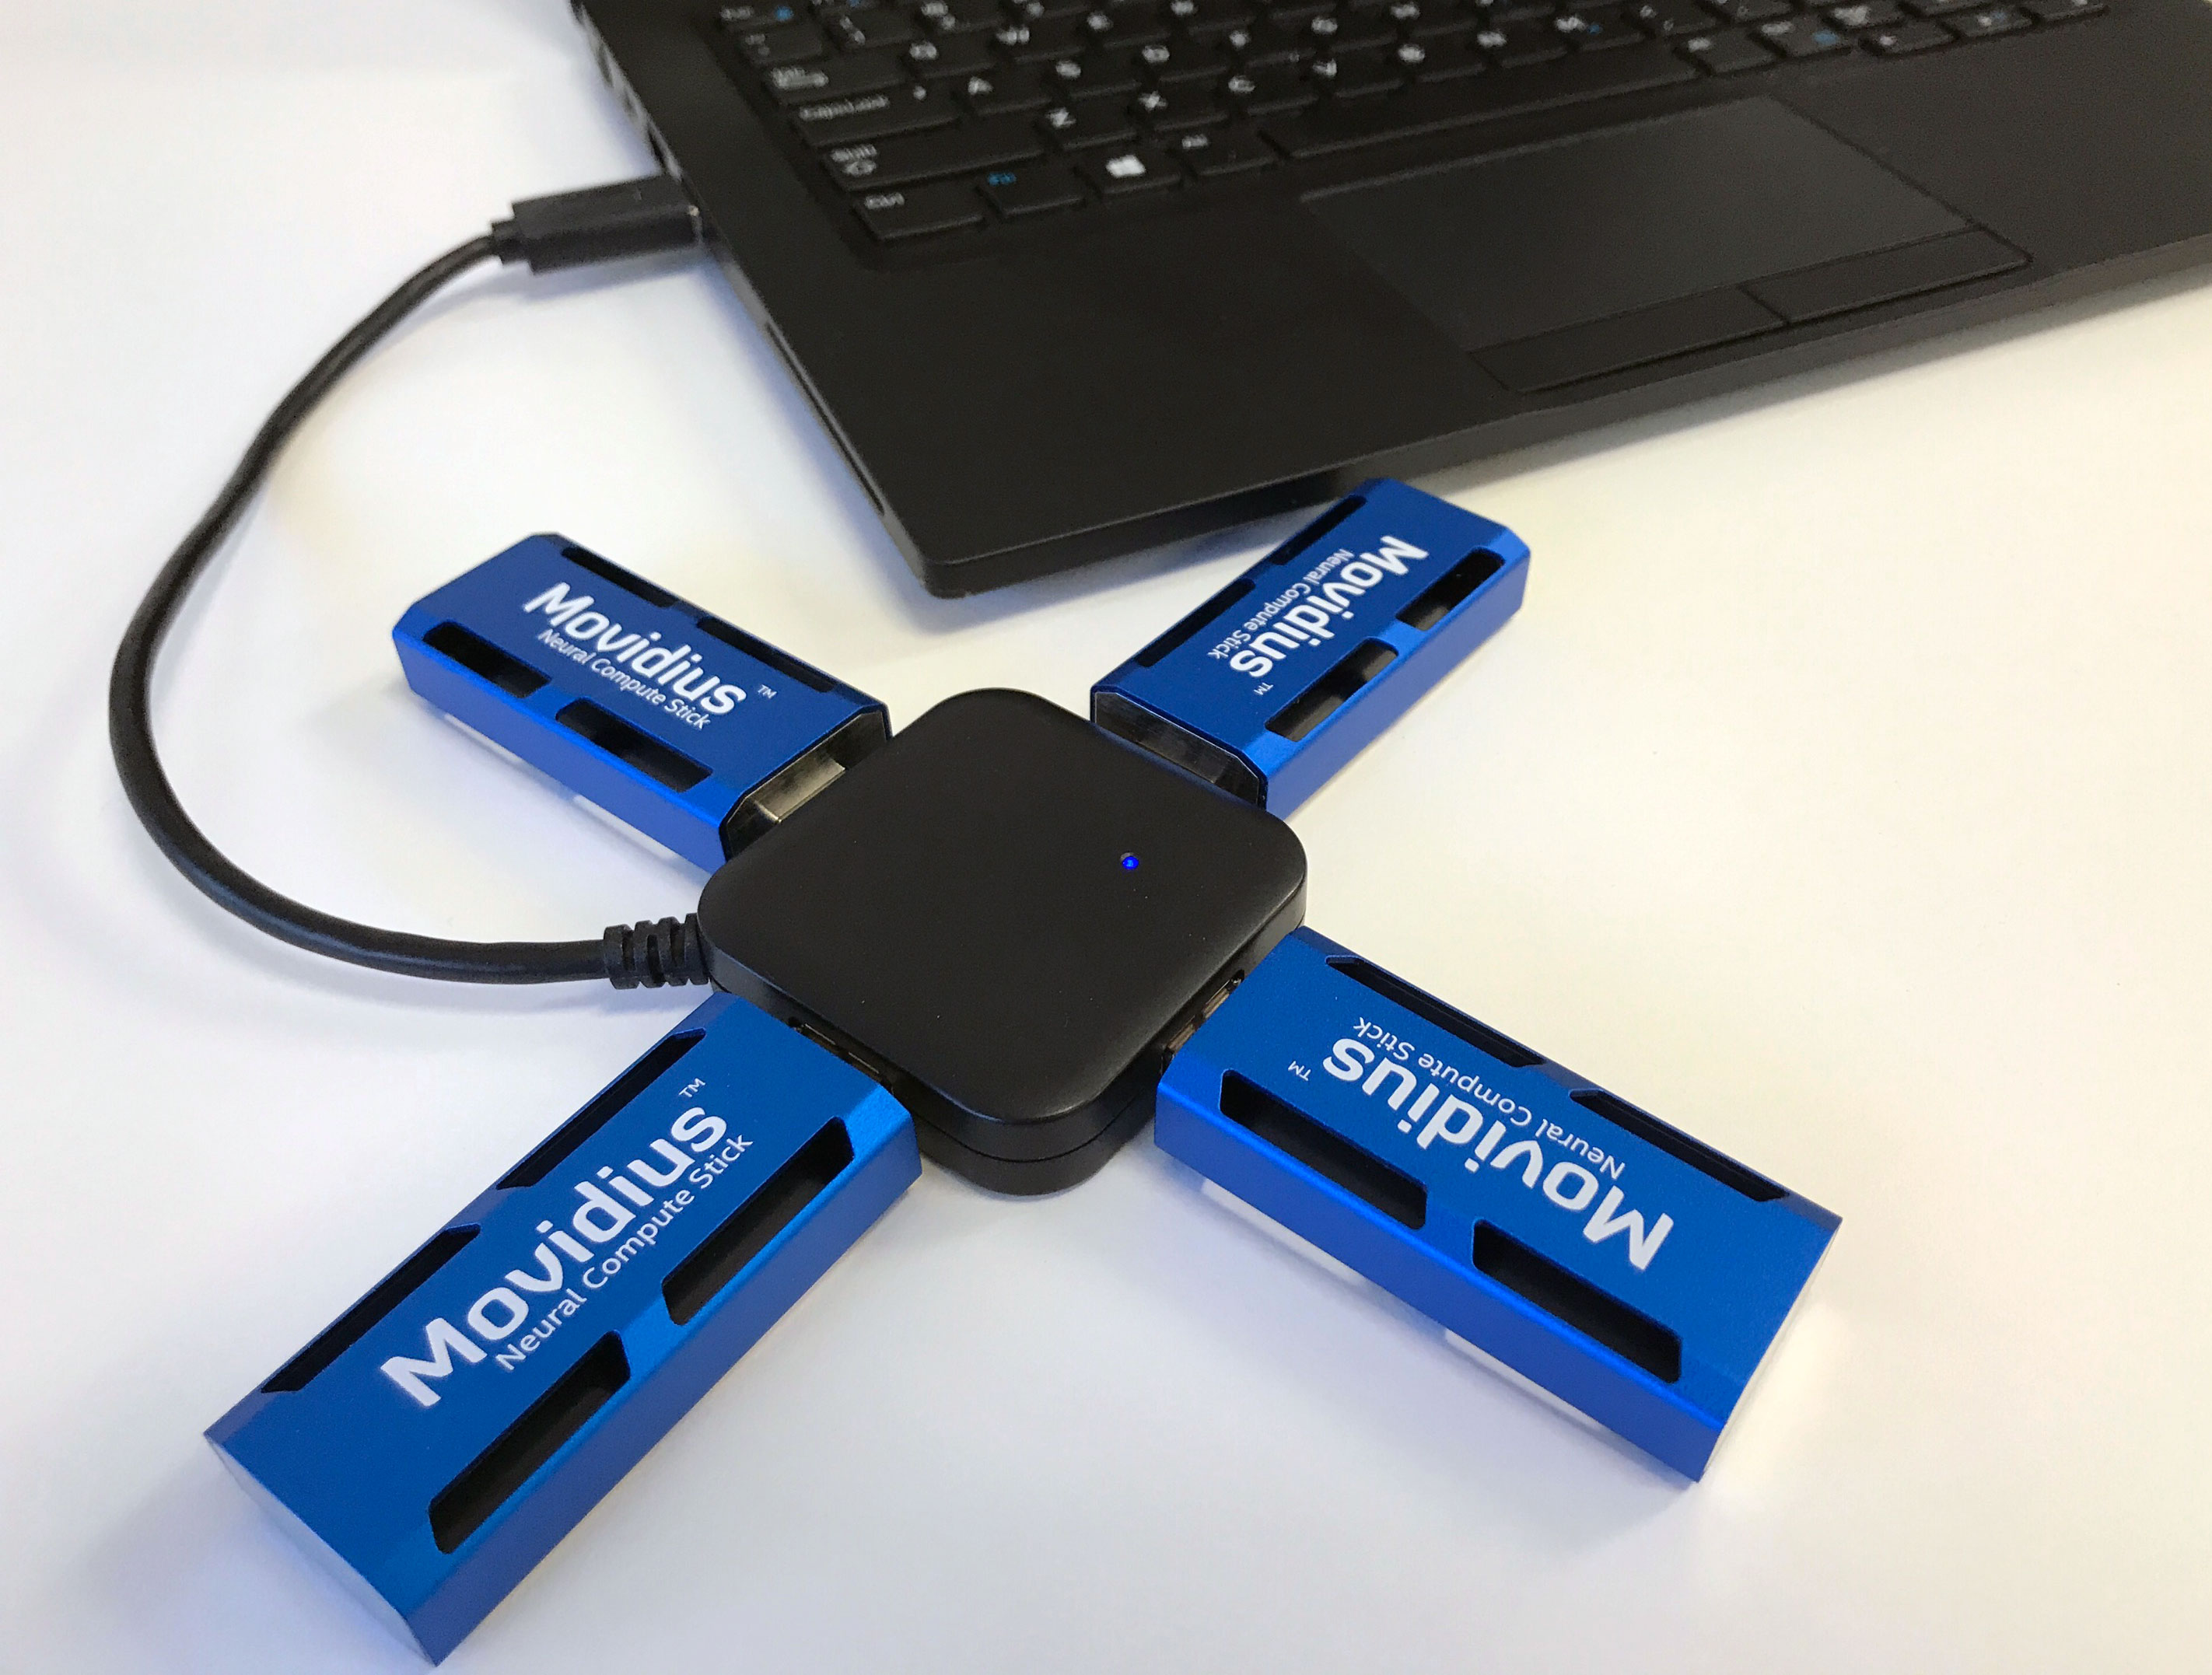 Intel crams 100 GFLOPS of neural-net inferencing onto a USB stick